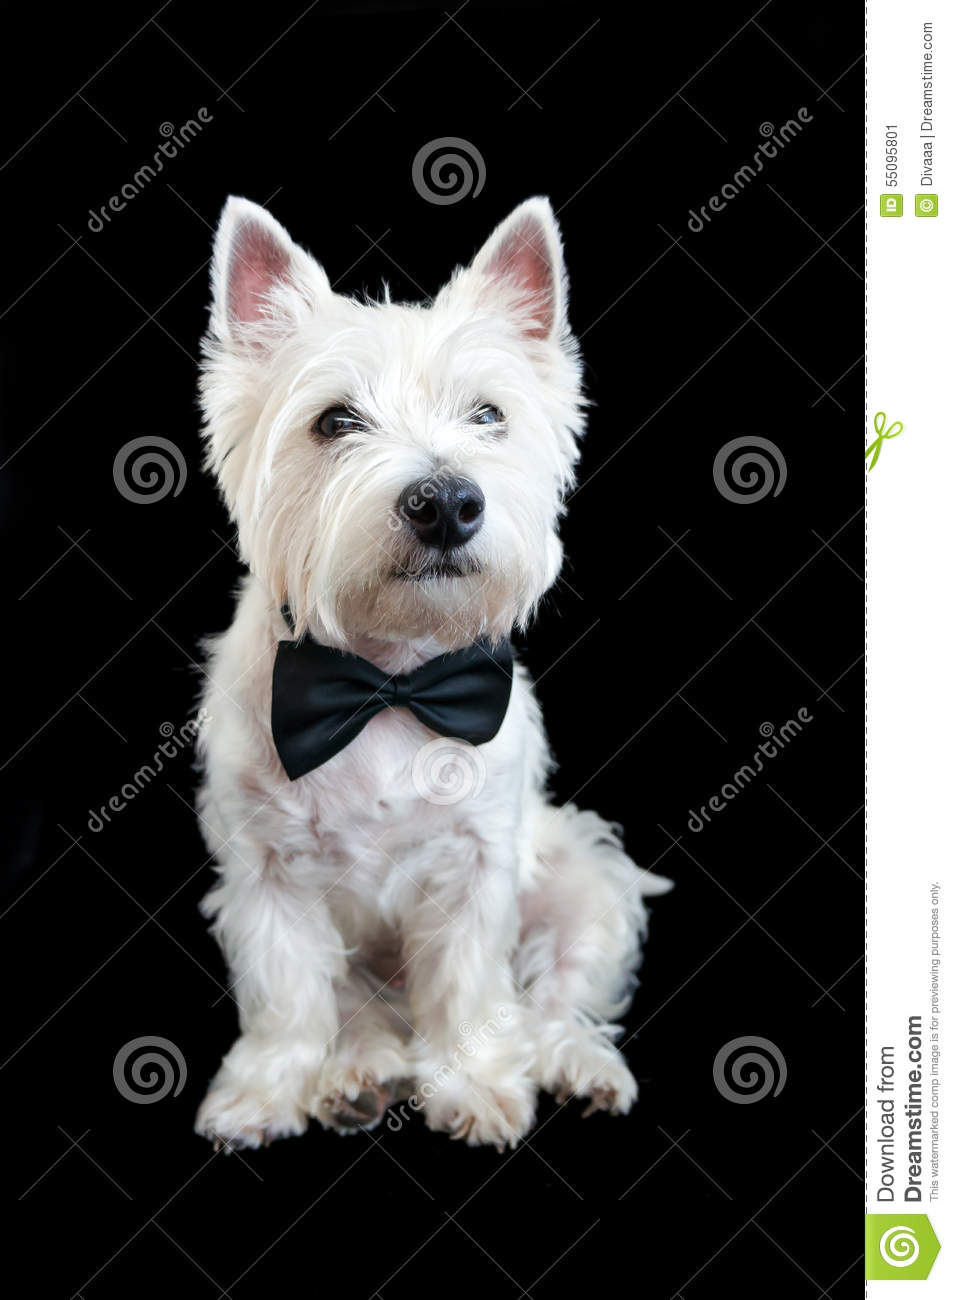 West Highland White Terrier Stock Photo - Image: 55095801